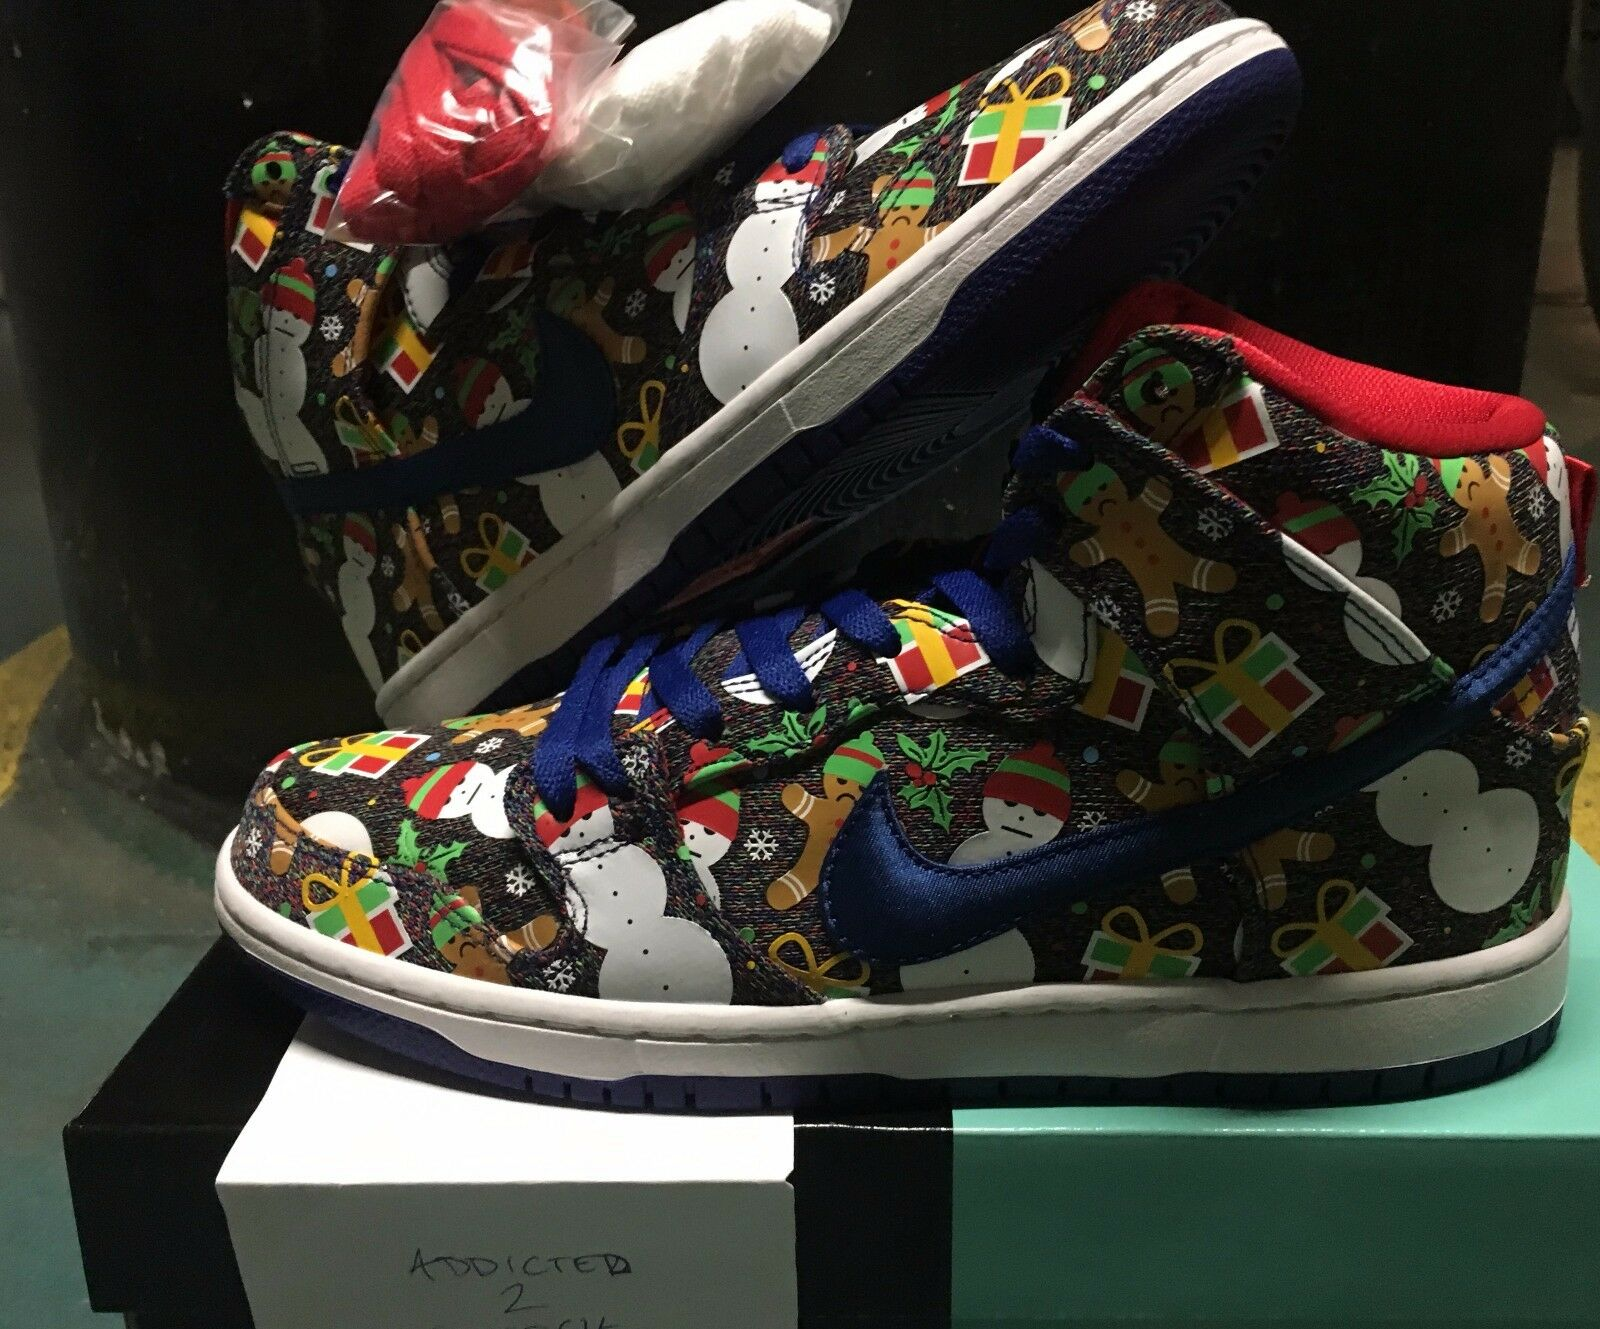 Nike SB Dunk High Pro Ugly Sweater Concepts 881758?-?446 9.5 US qs what the